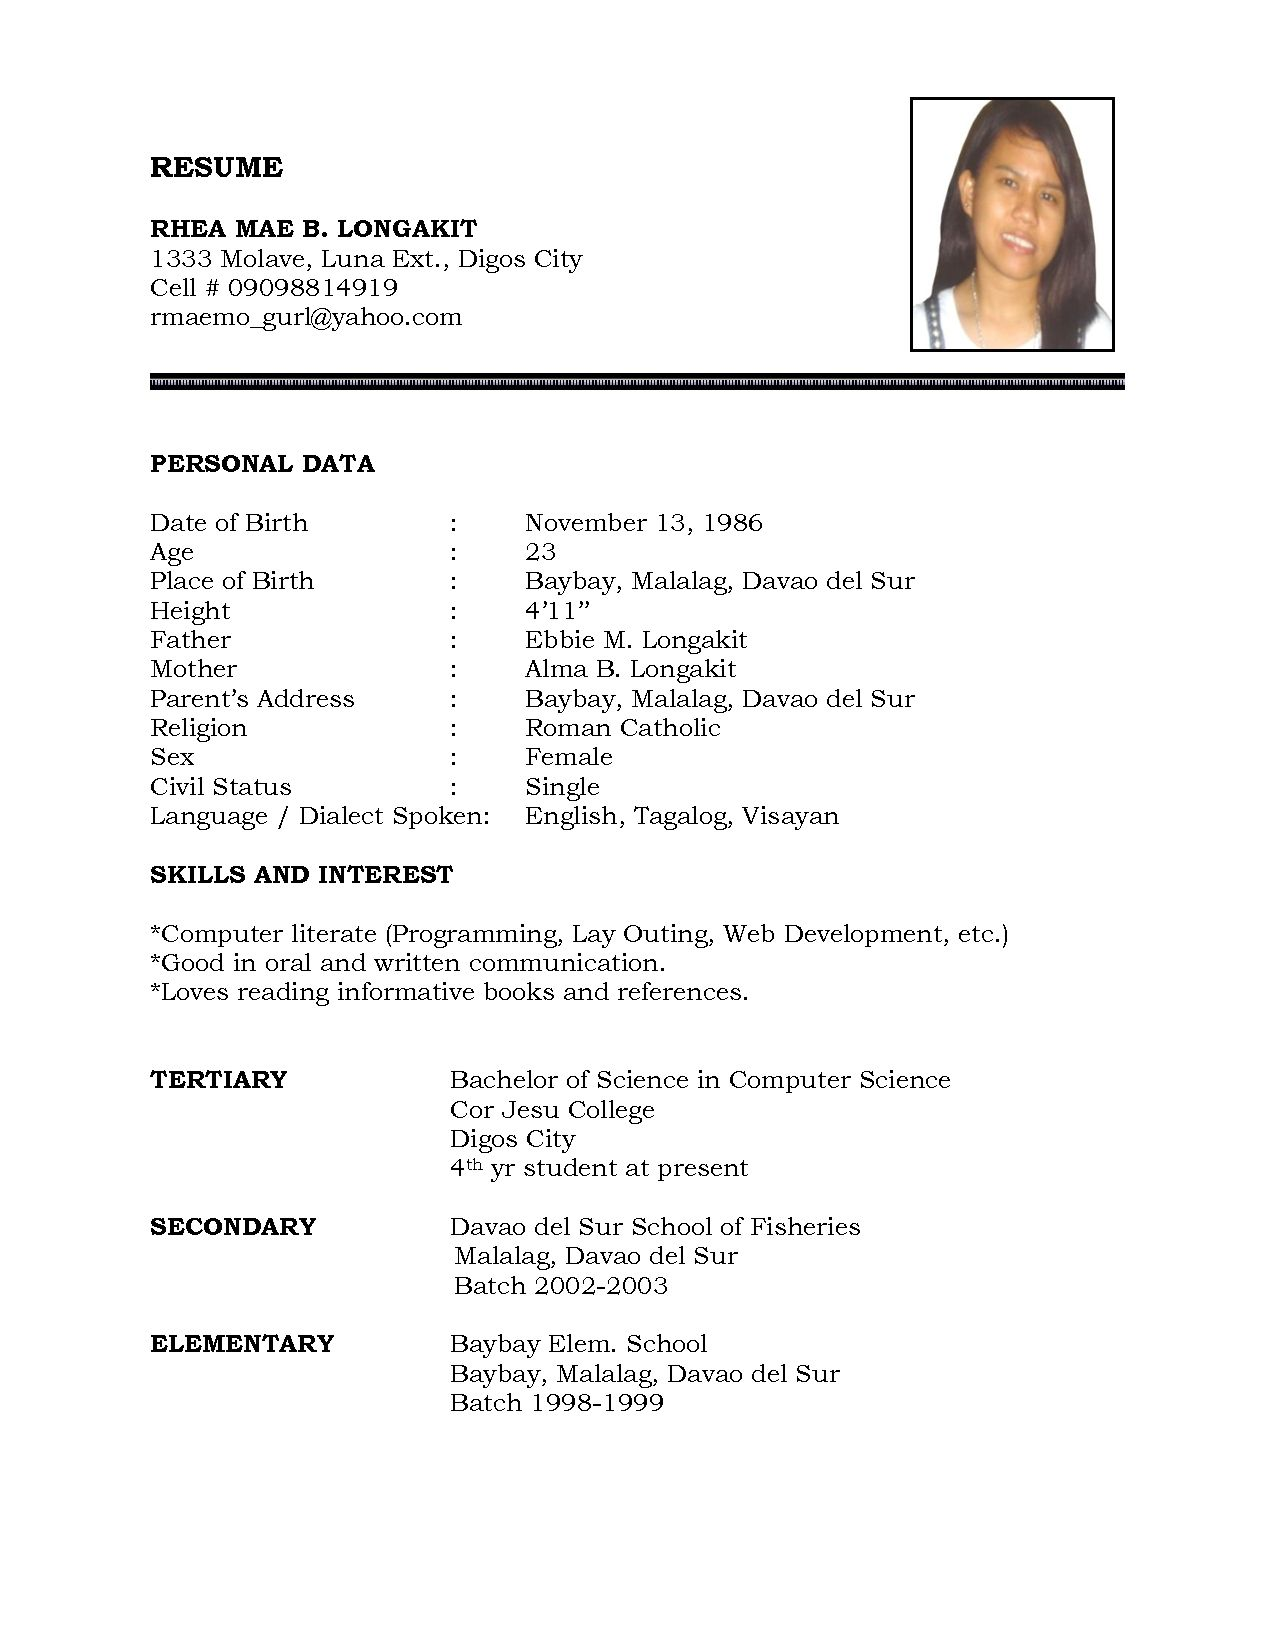 Sample Of Simple Resume Format Resume Sample Simple De9e2a60f The Simple Format Of Resume